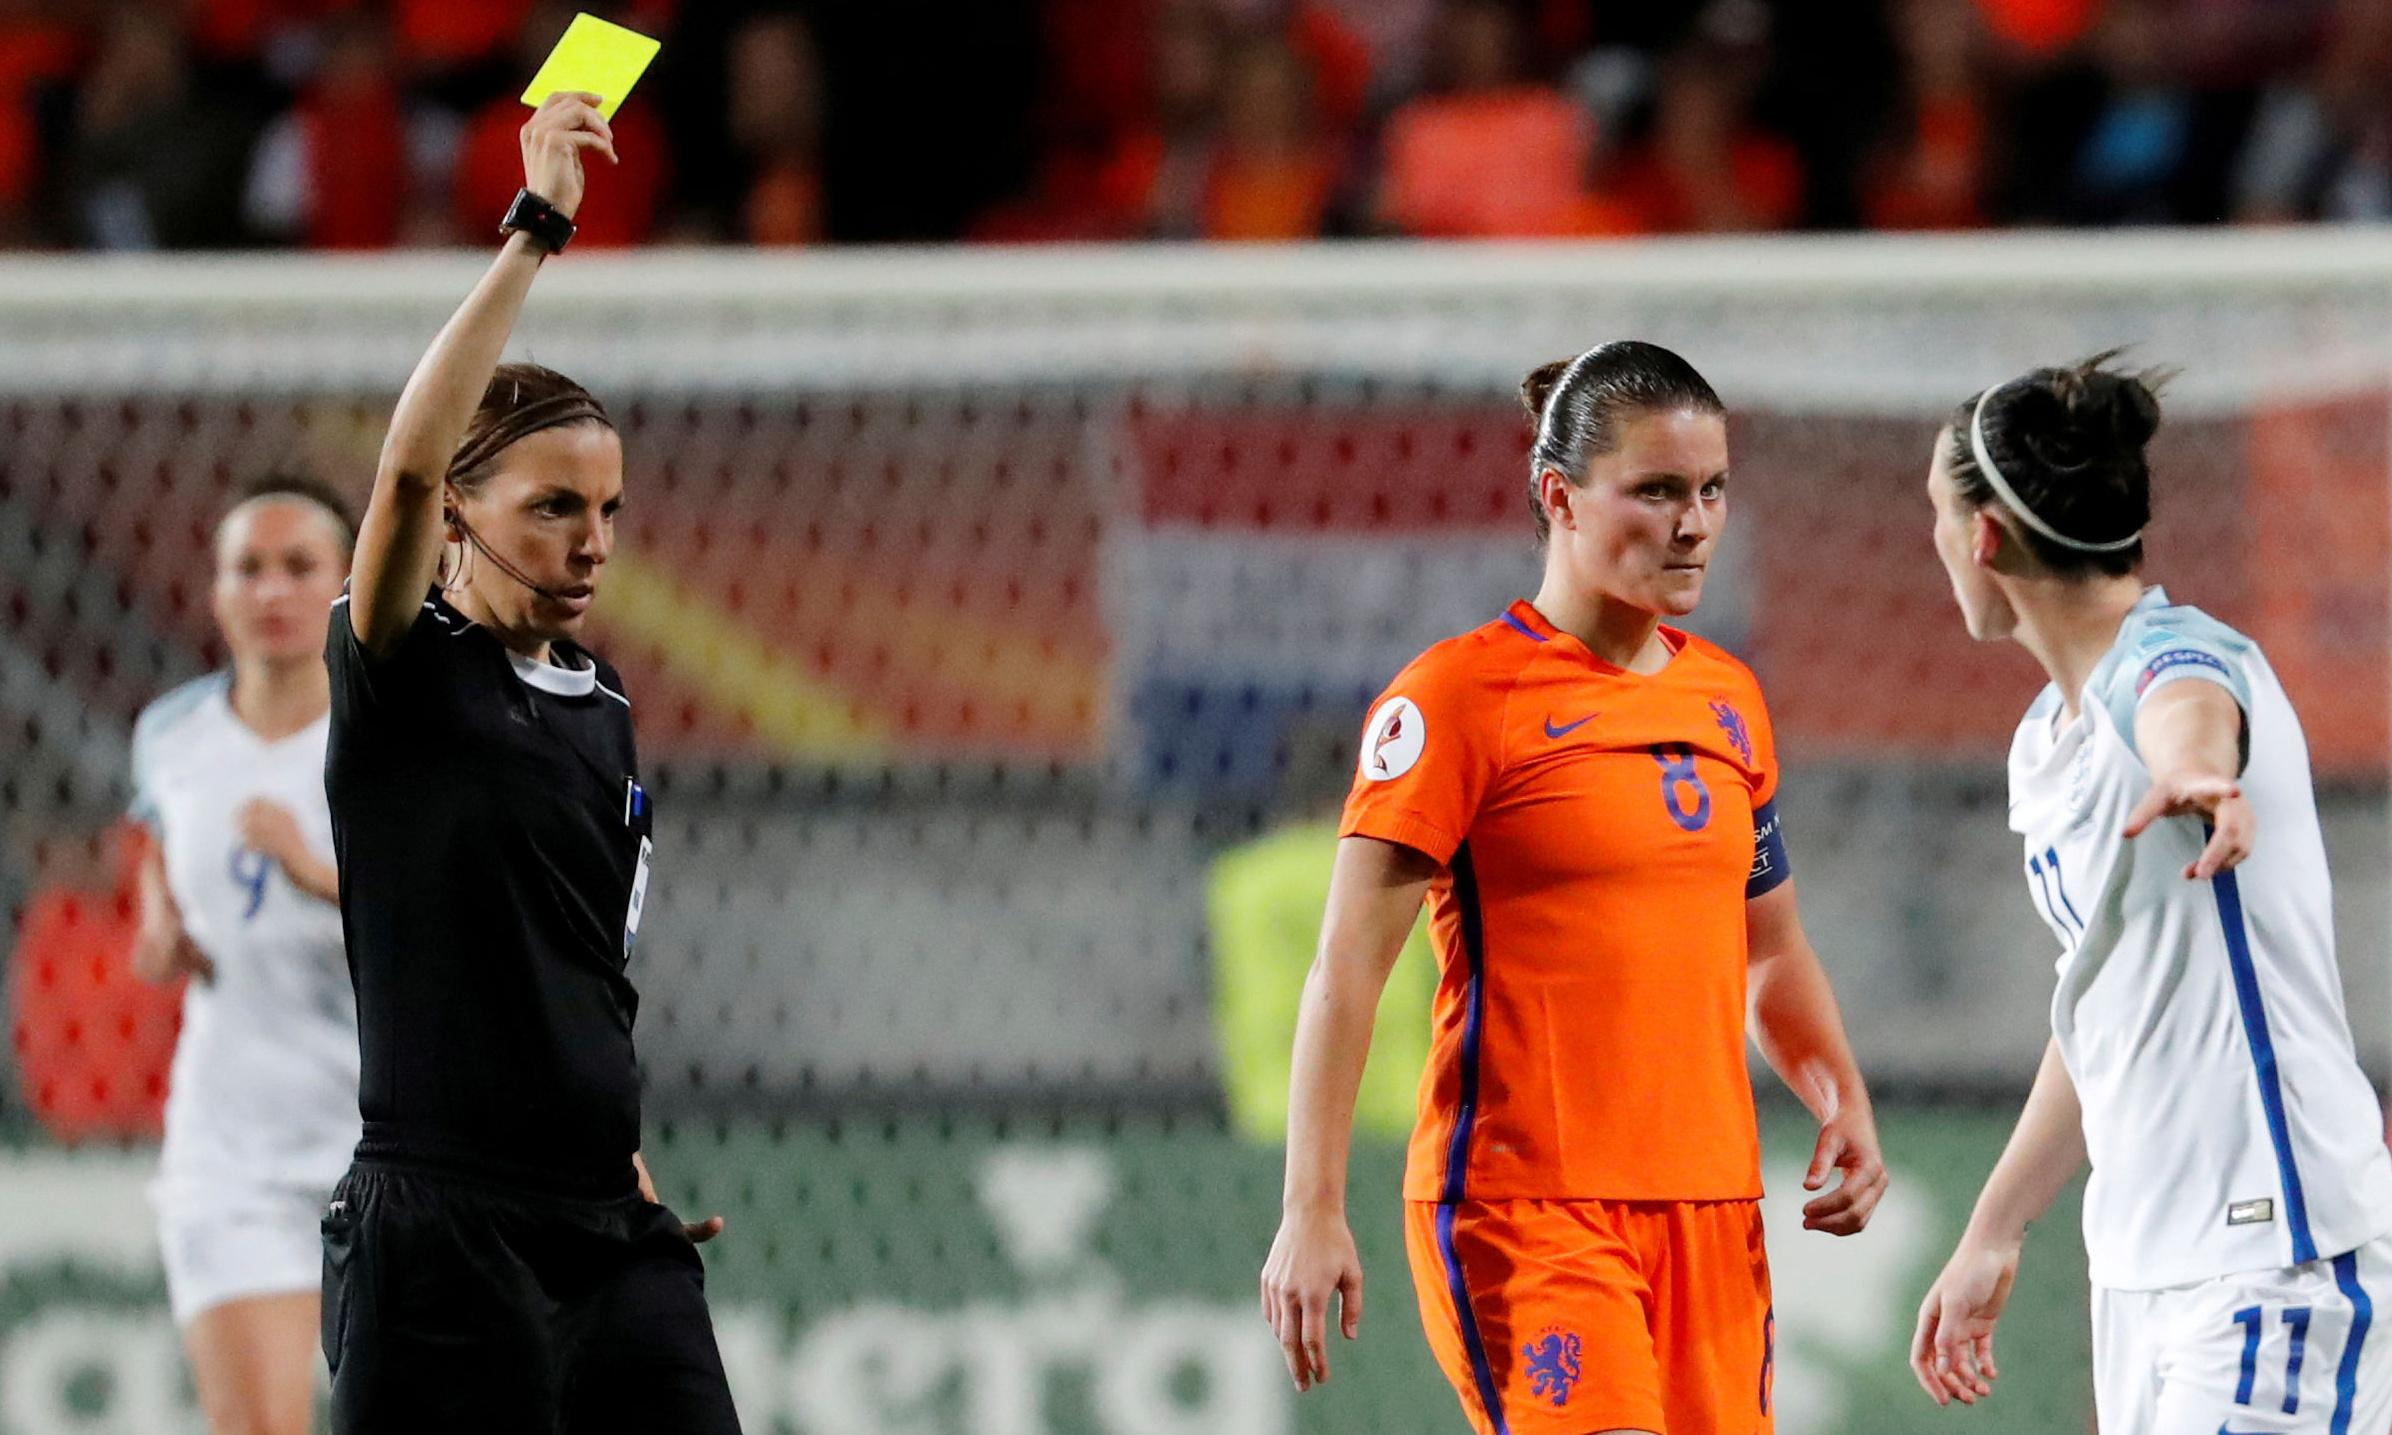 Stéphanie Frappart to make history as Ligue 1's first female referee